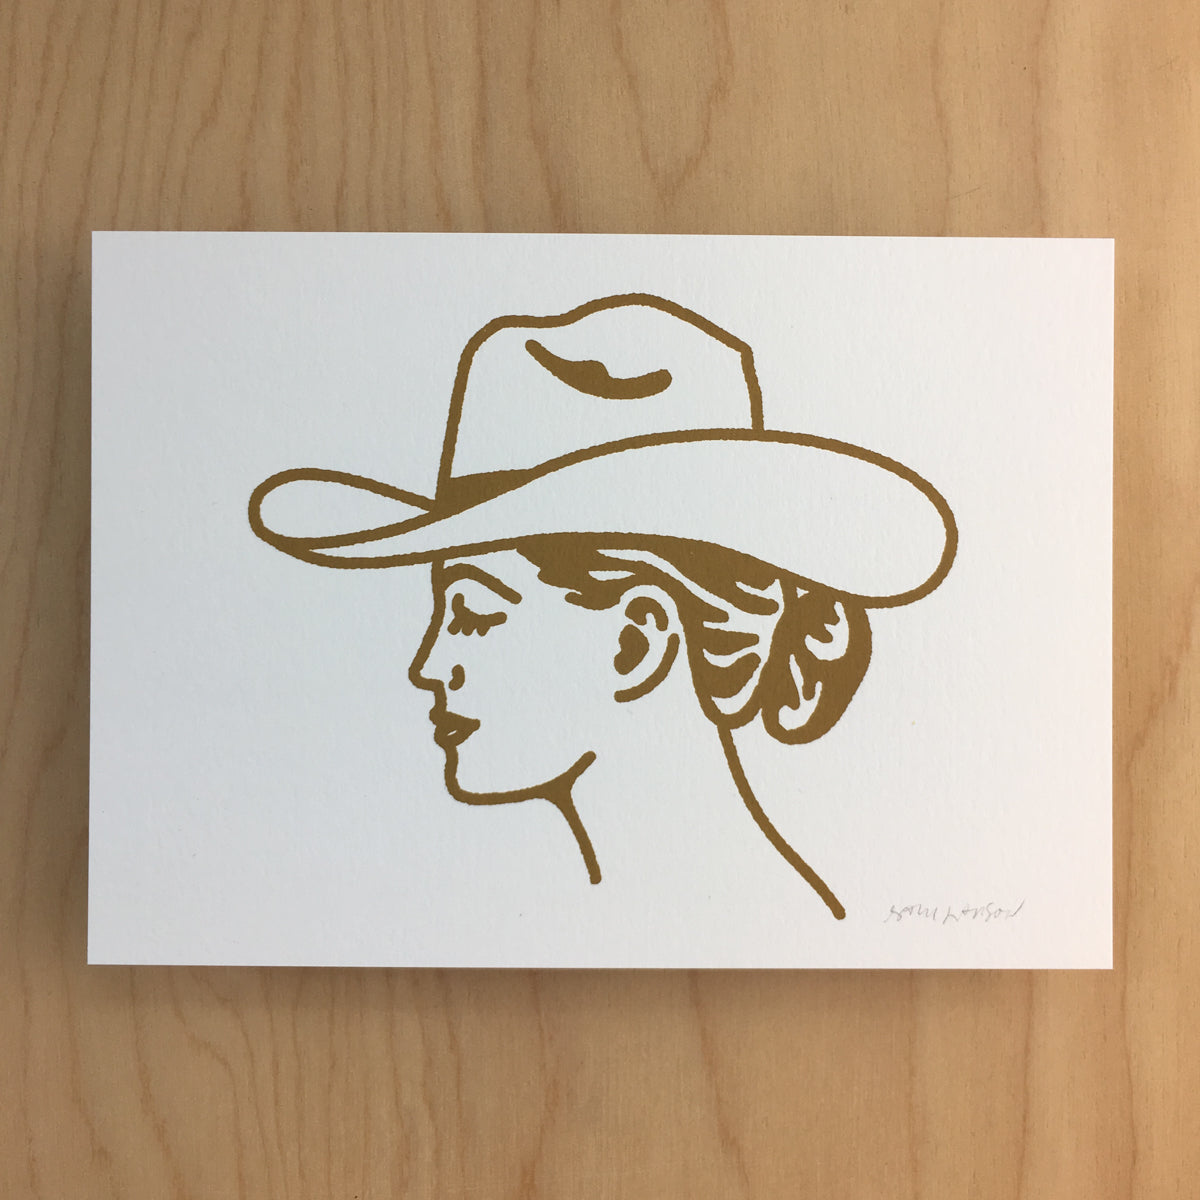 Austin Cowgirl - Signed Print #145 GOLD